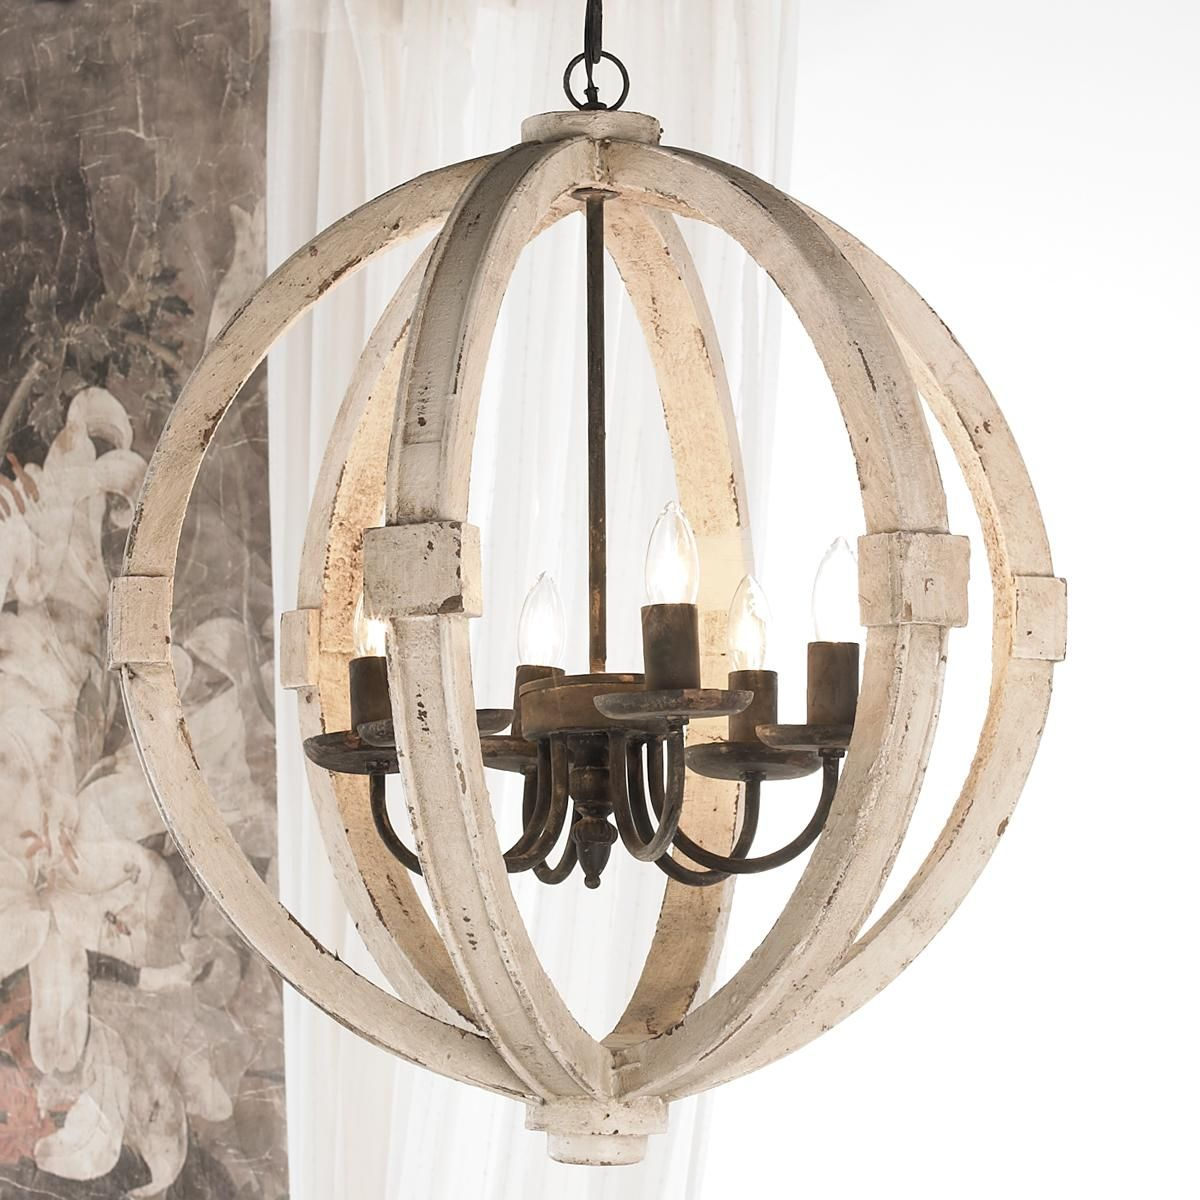 Distressed Wood Sphere Chandelier Rustic Chandelier Wooden Chandelier Wood Chandelier